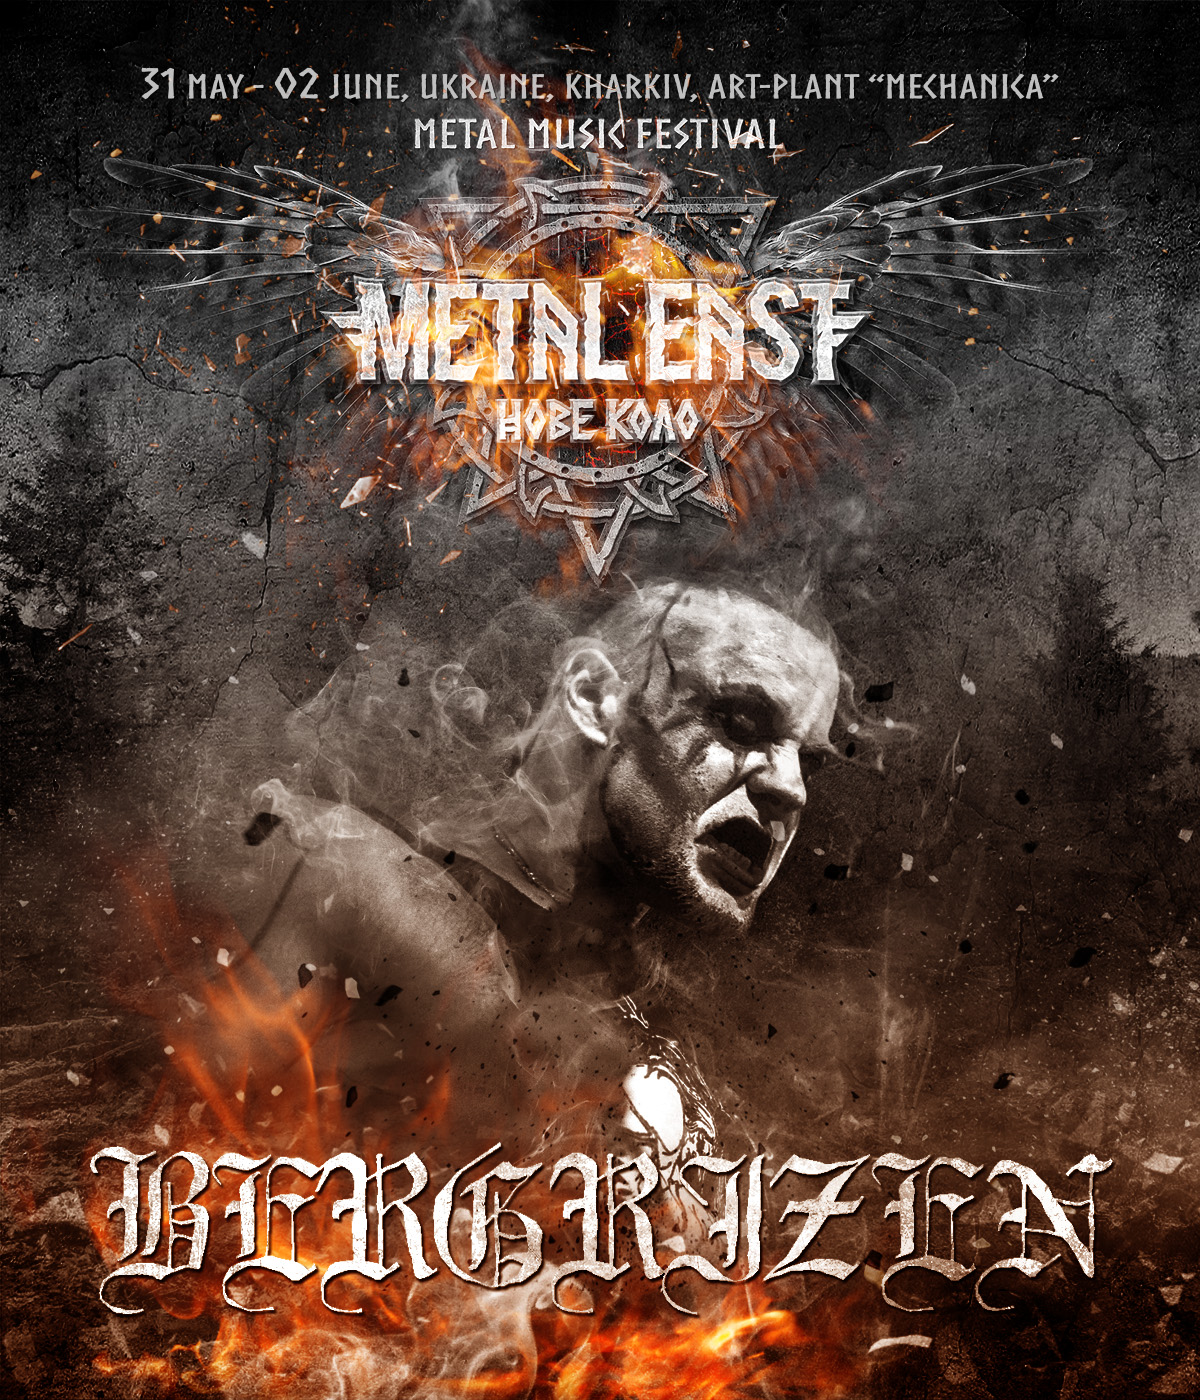 31 May, 1 – 2 June 2019. Ukraine, BERGRIZEN at the stage of Metal East Nove Kolo festival in Kharkiv